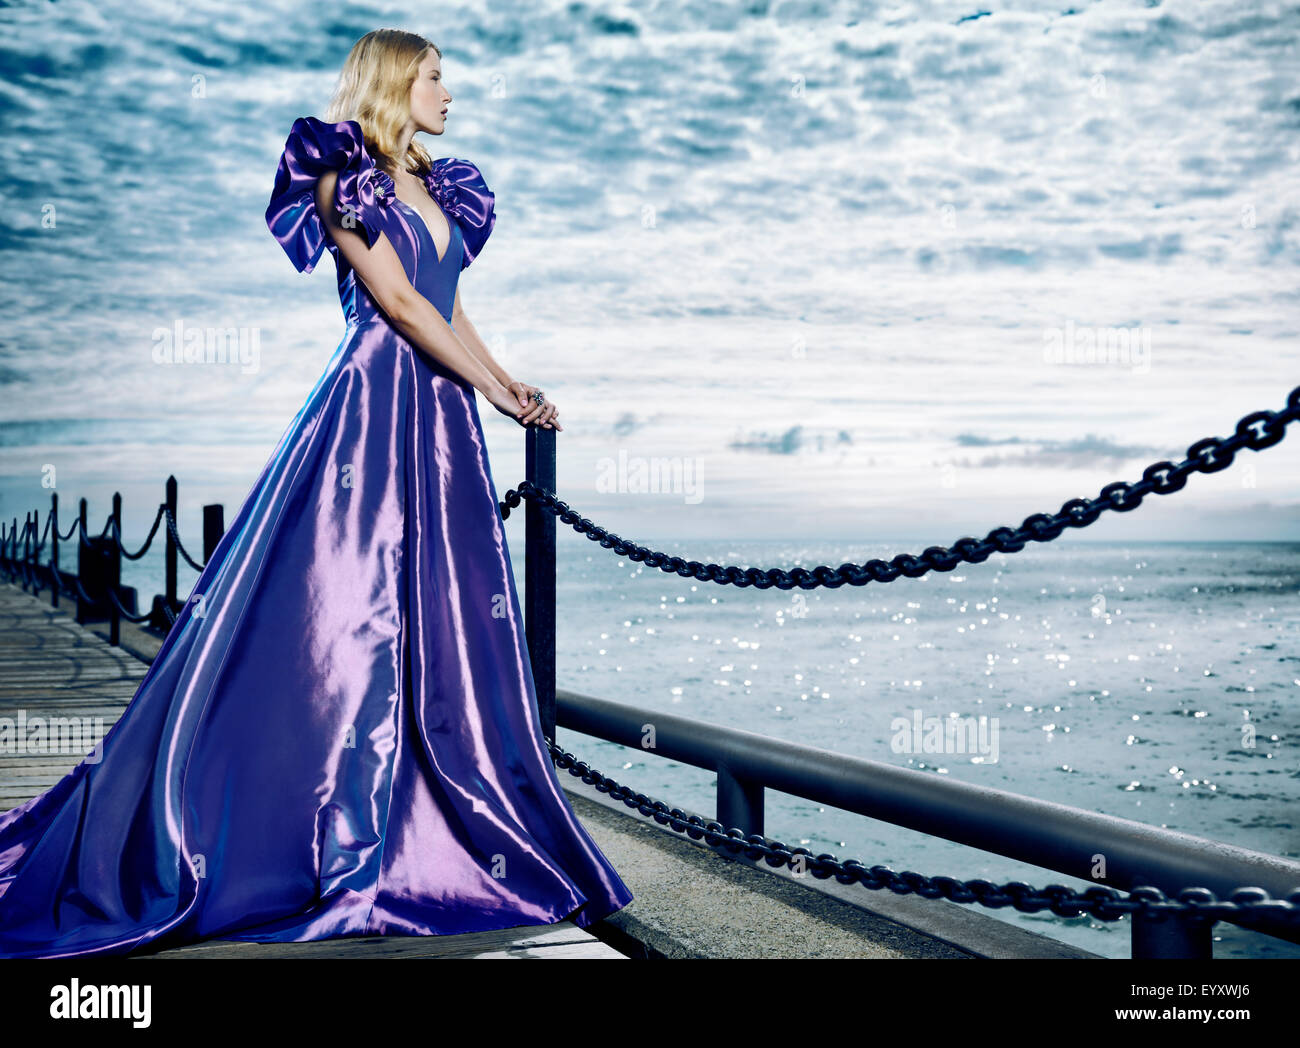 Young blond woman wearing a beautiful long blue dress, evening gown, standing at waterfront looking at the sea - Stock Image